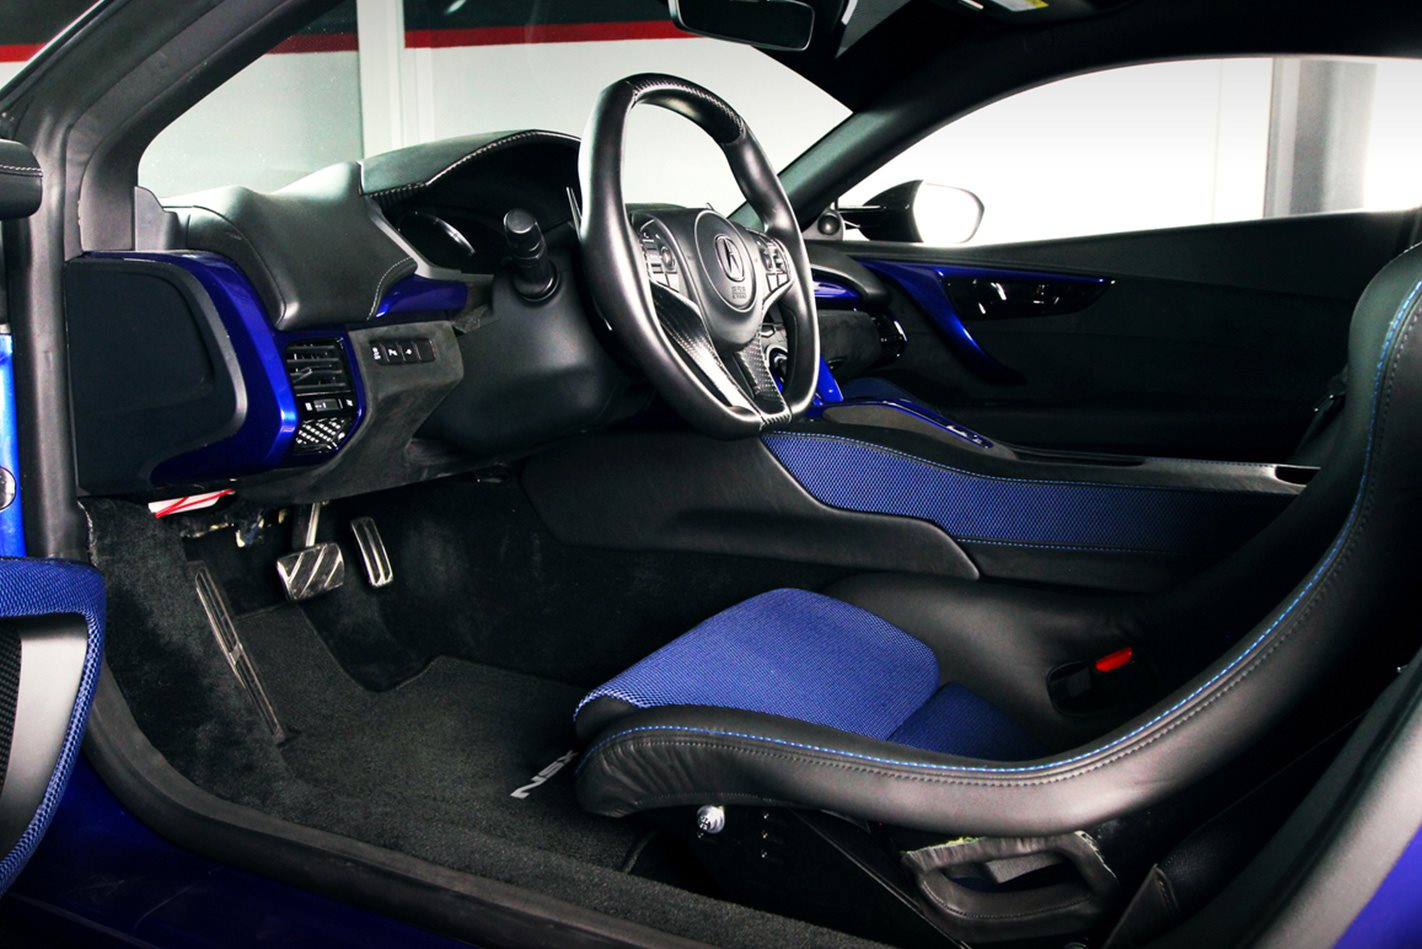 Acura-NSX-Dream-interior.jpg